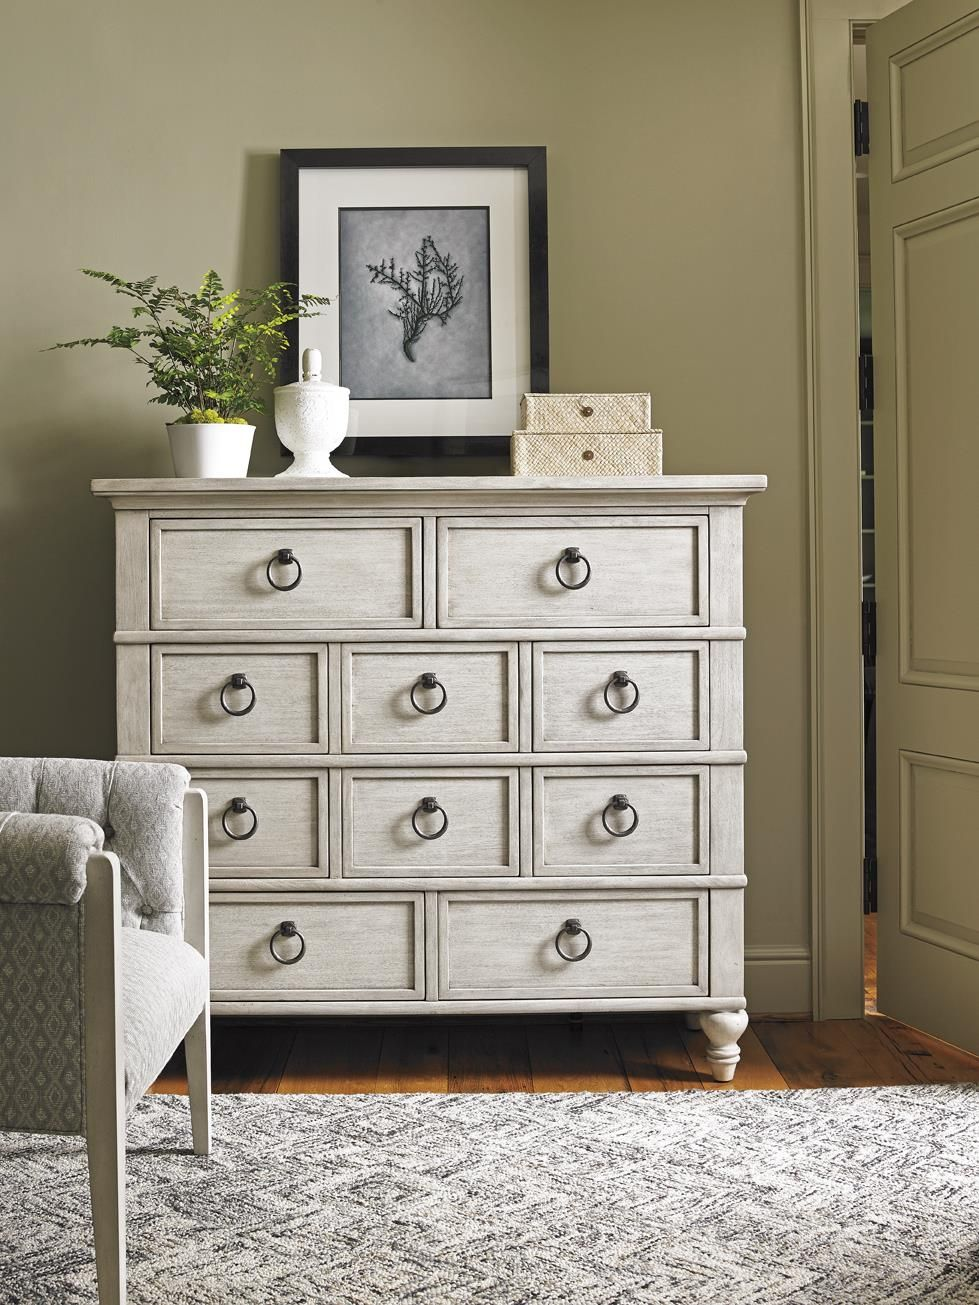 Oyster Bay Fall River Chest With Ten Drawers And Ring Pull Hardware By  Lexington